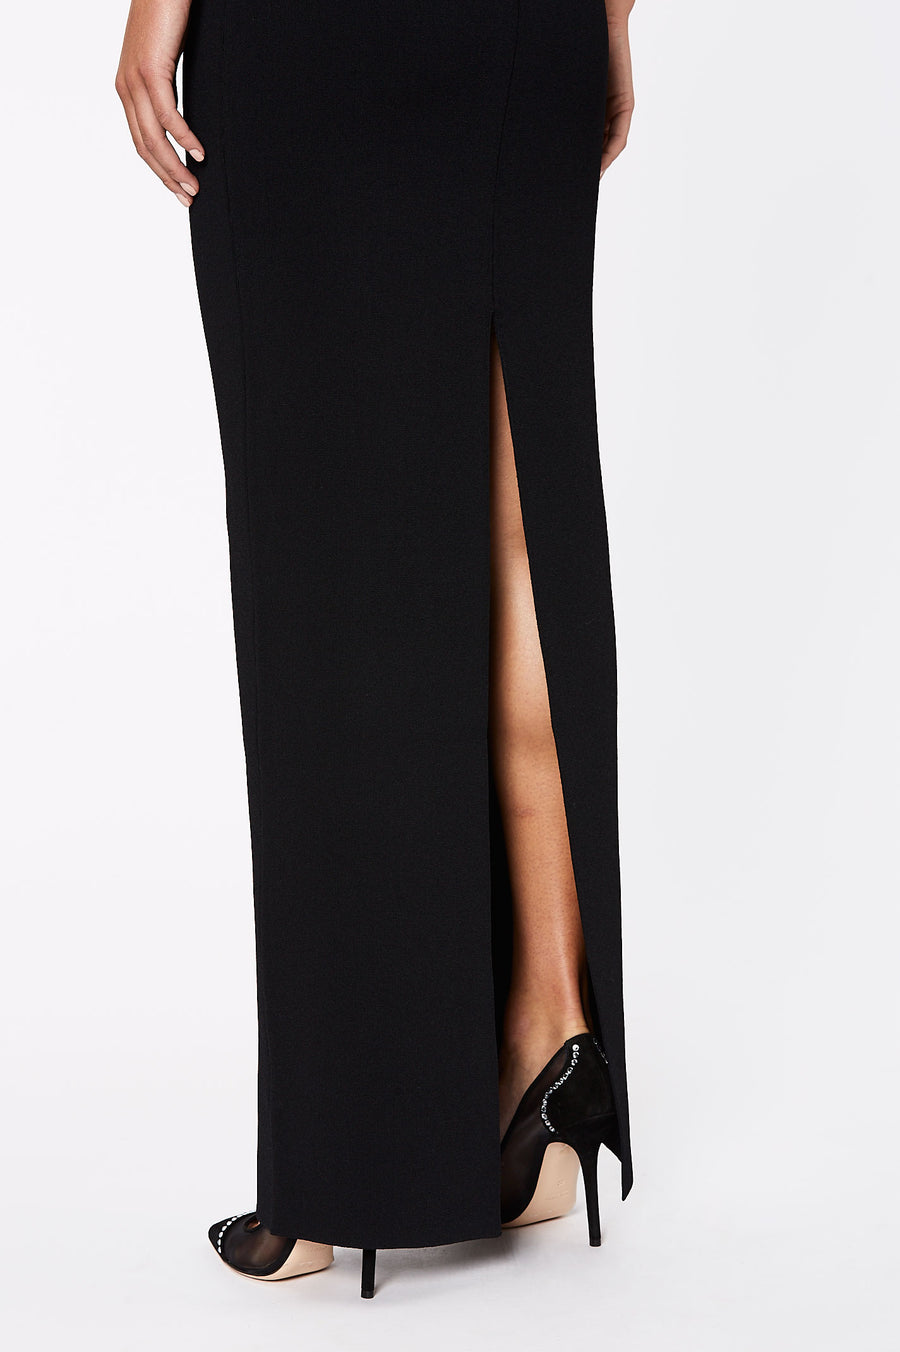 Crepe Knit Long Pencil Skirt Black - Scanlan Theodore